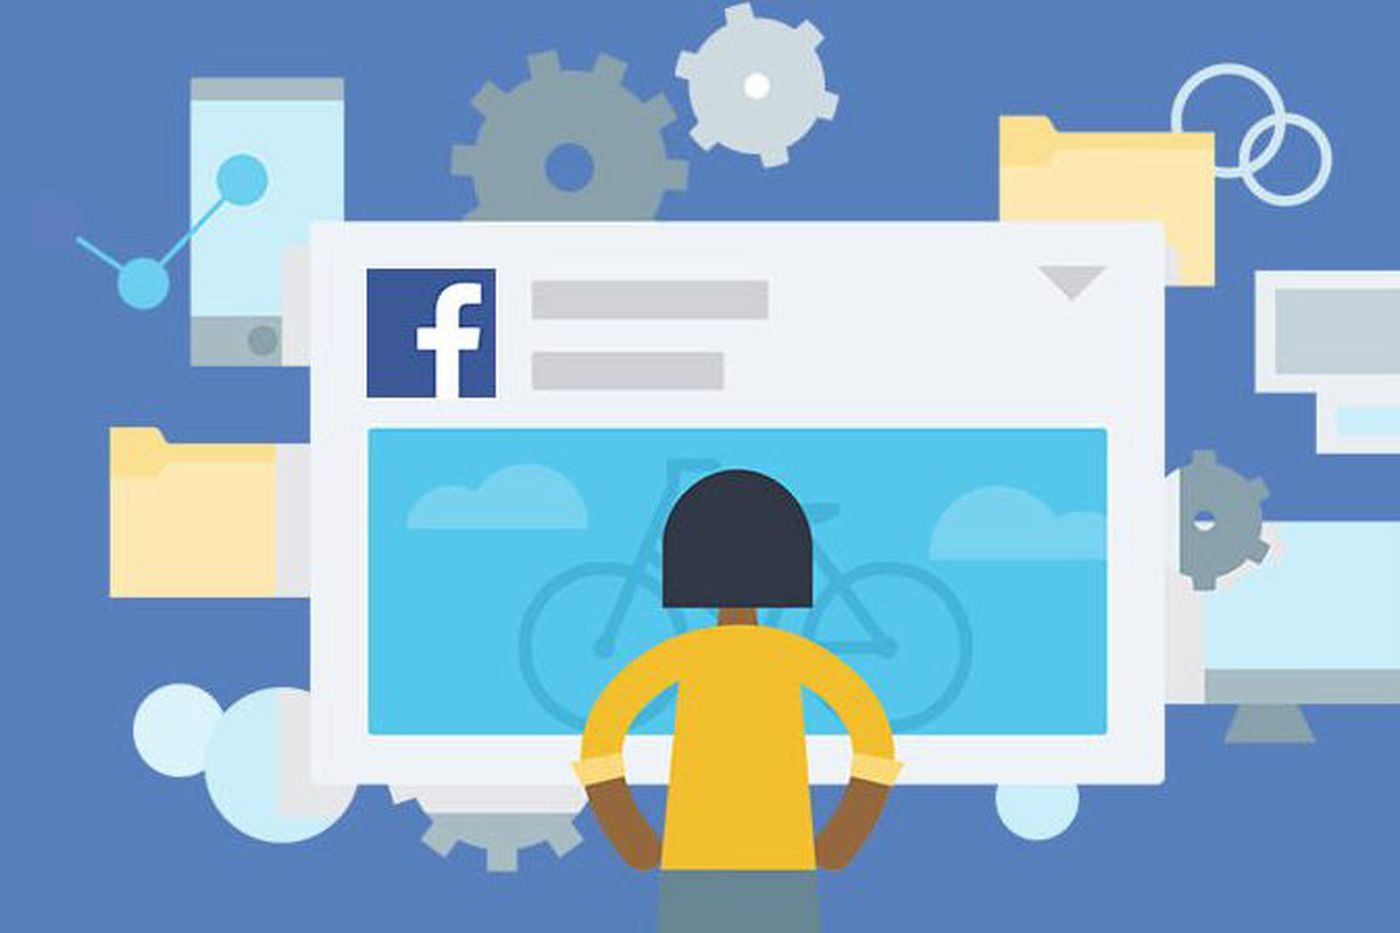 Facebook could have you addicted, deliberately | Stu Bykofsky